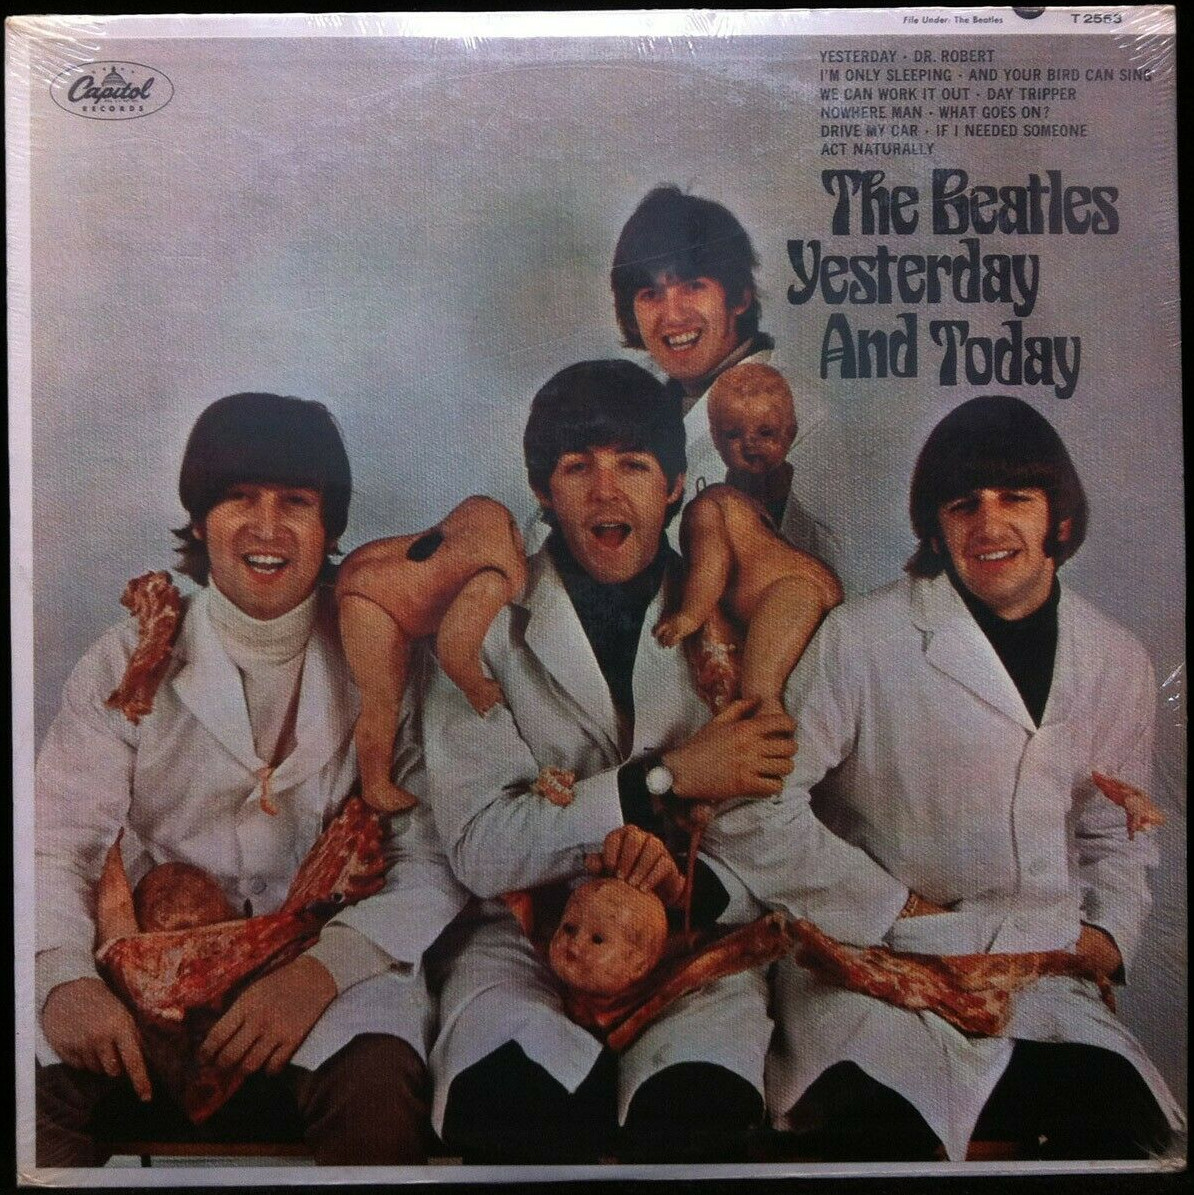 https://i0.wp.com/stuffnobodycaresabout.com/wp-content/uploads/2019/11/Beatles-photo-Yesterday-and-Today-actual-LP-cover-photo-Bob-Whitaker.jpg